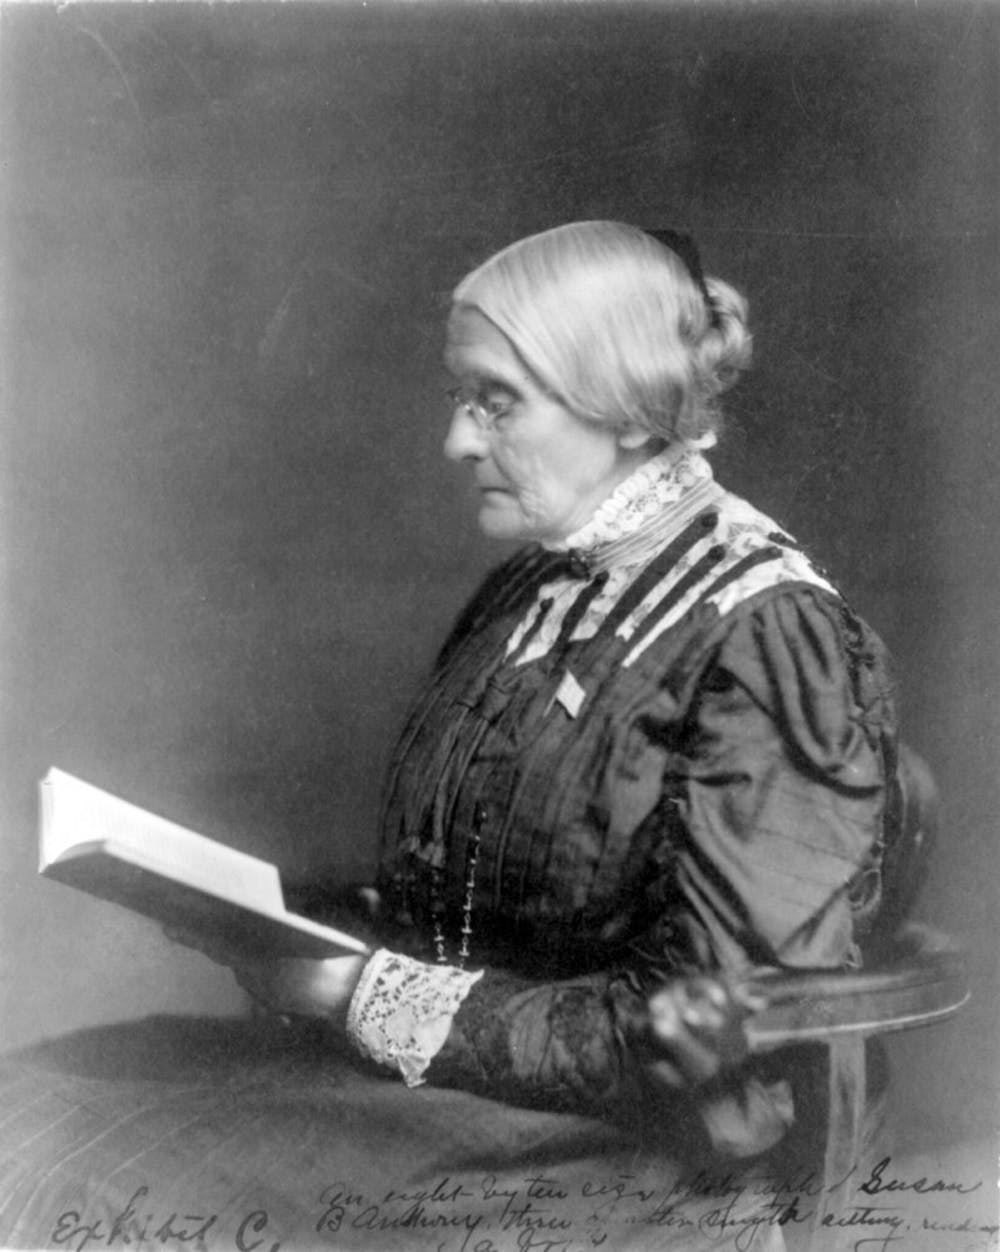 Susan B. Anthony Day honors legacy of women's suffrage leader